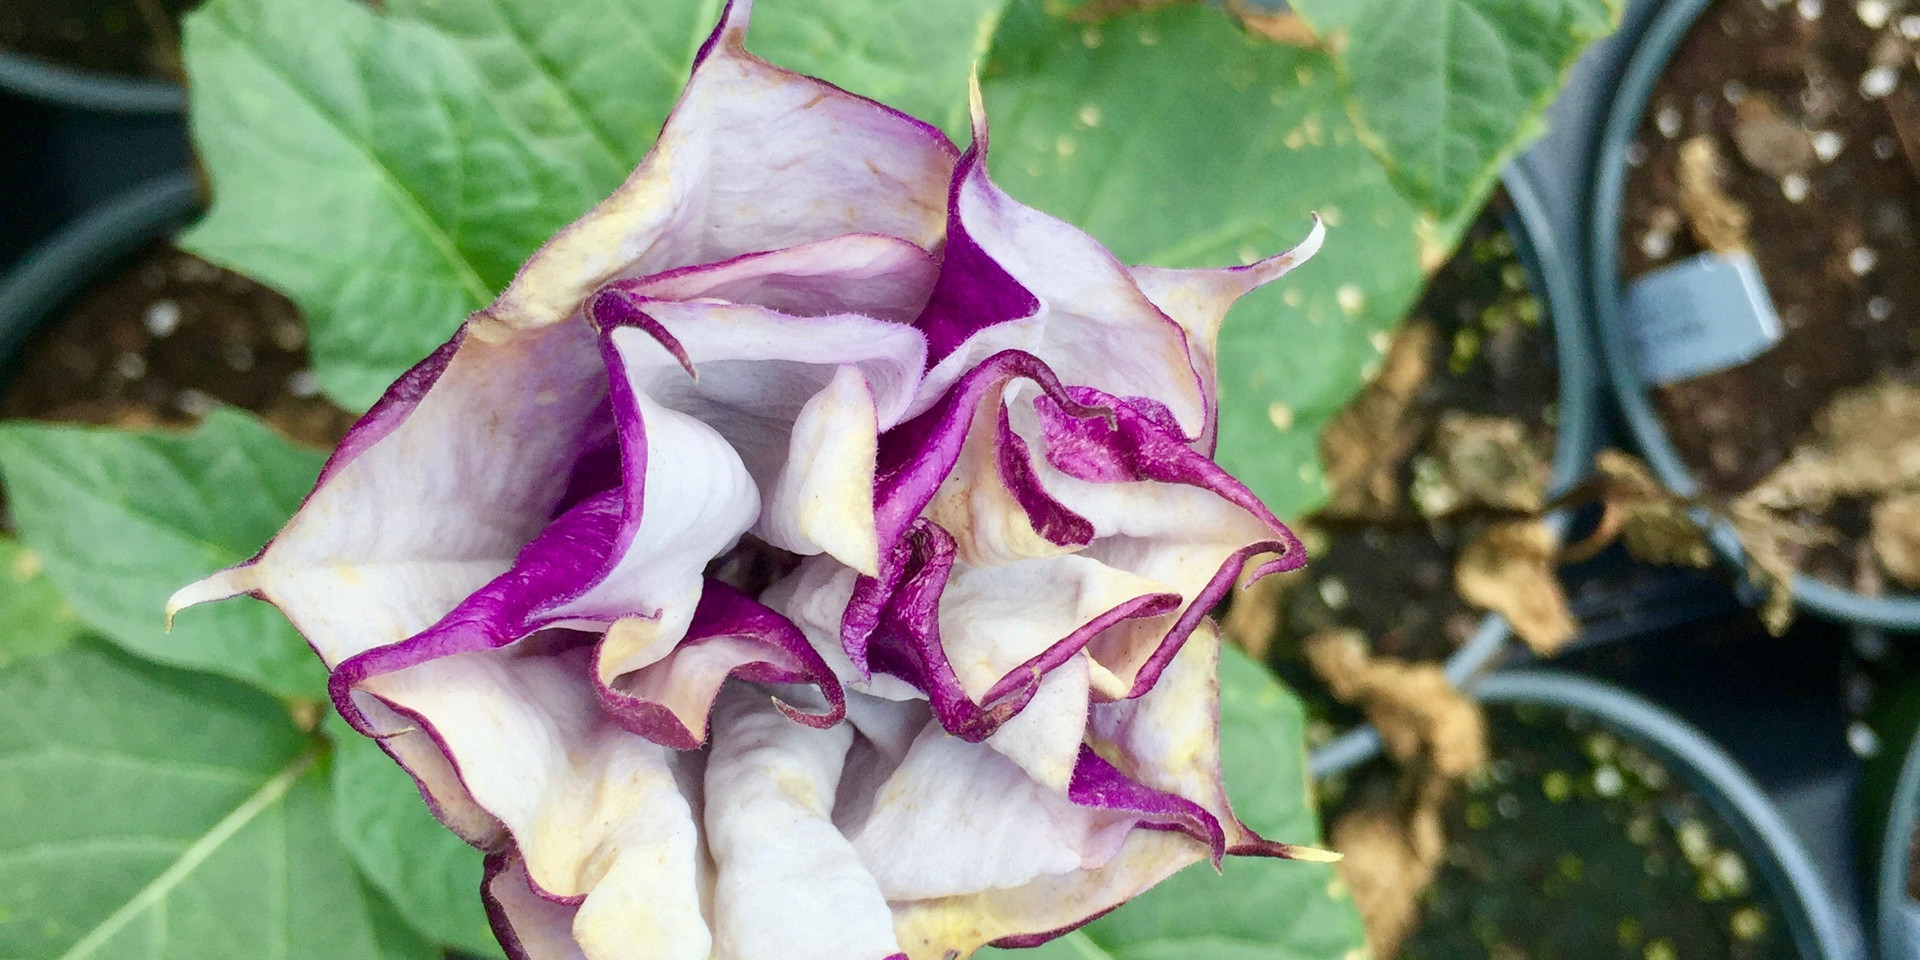 Love this Datura Black Currant Swirl!  (Note, it is toxic if ingested)